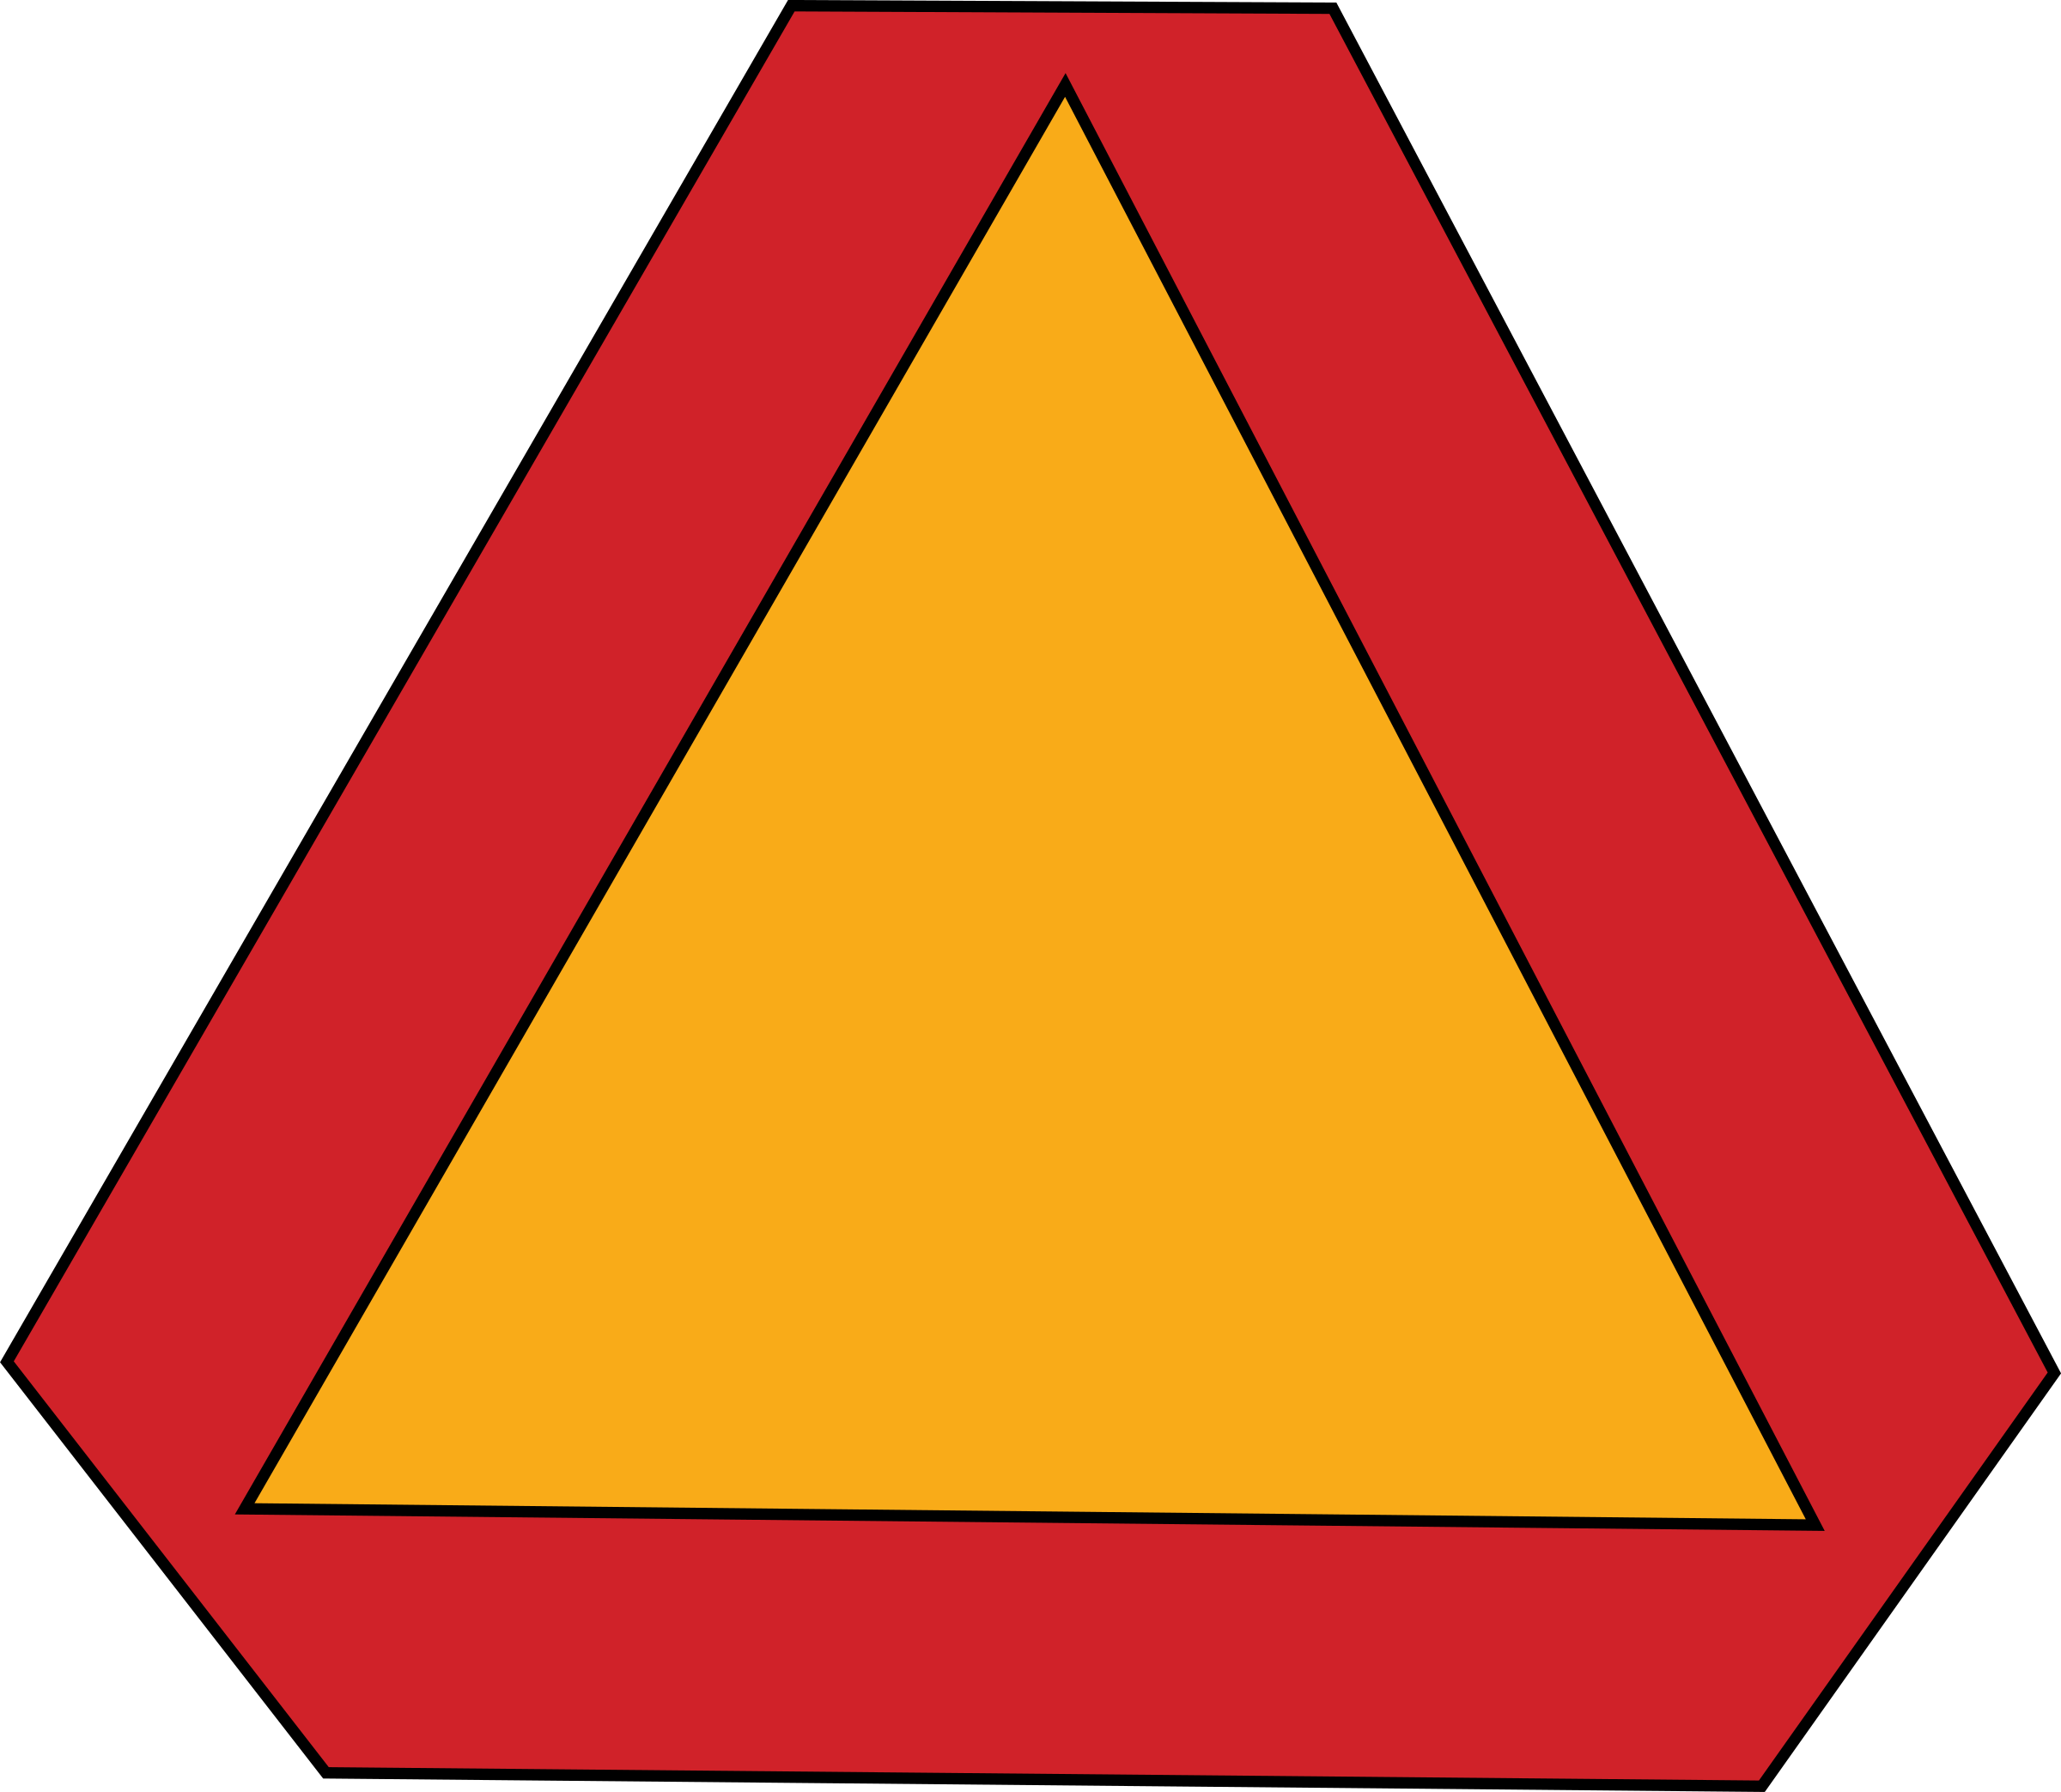 Slow moving vehicle sign by Rfc1394